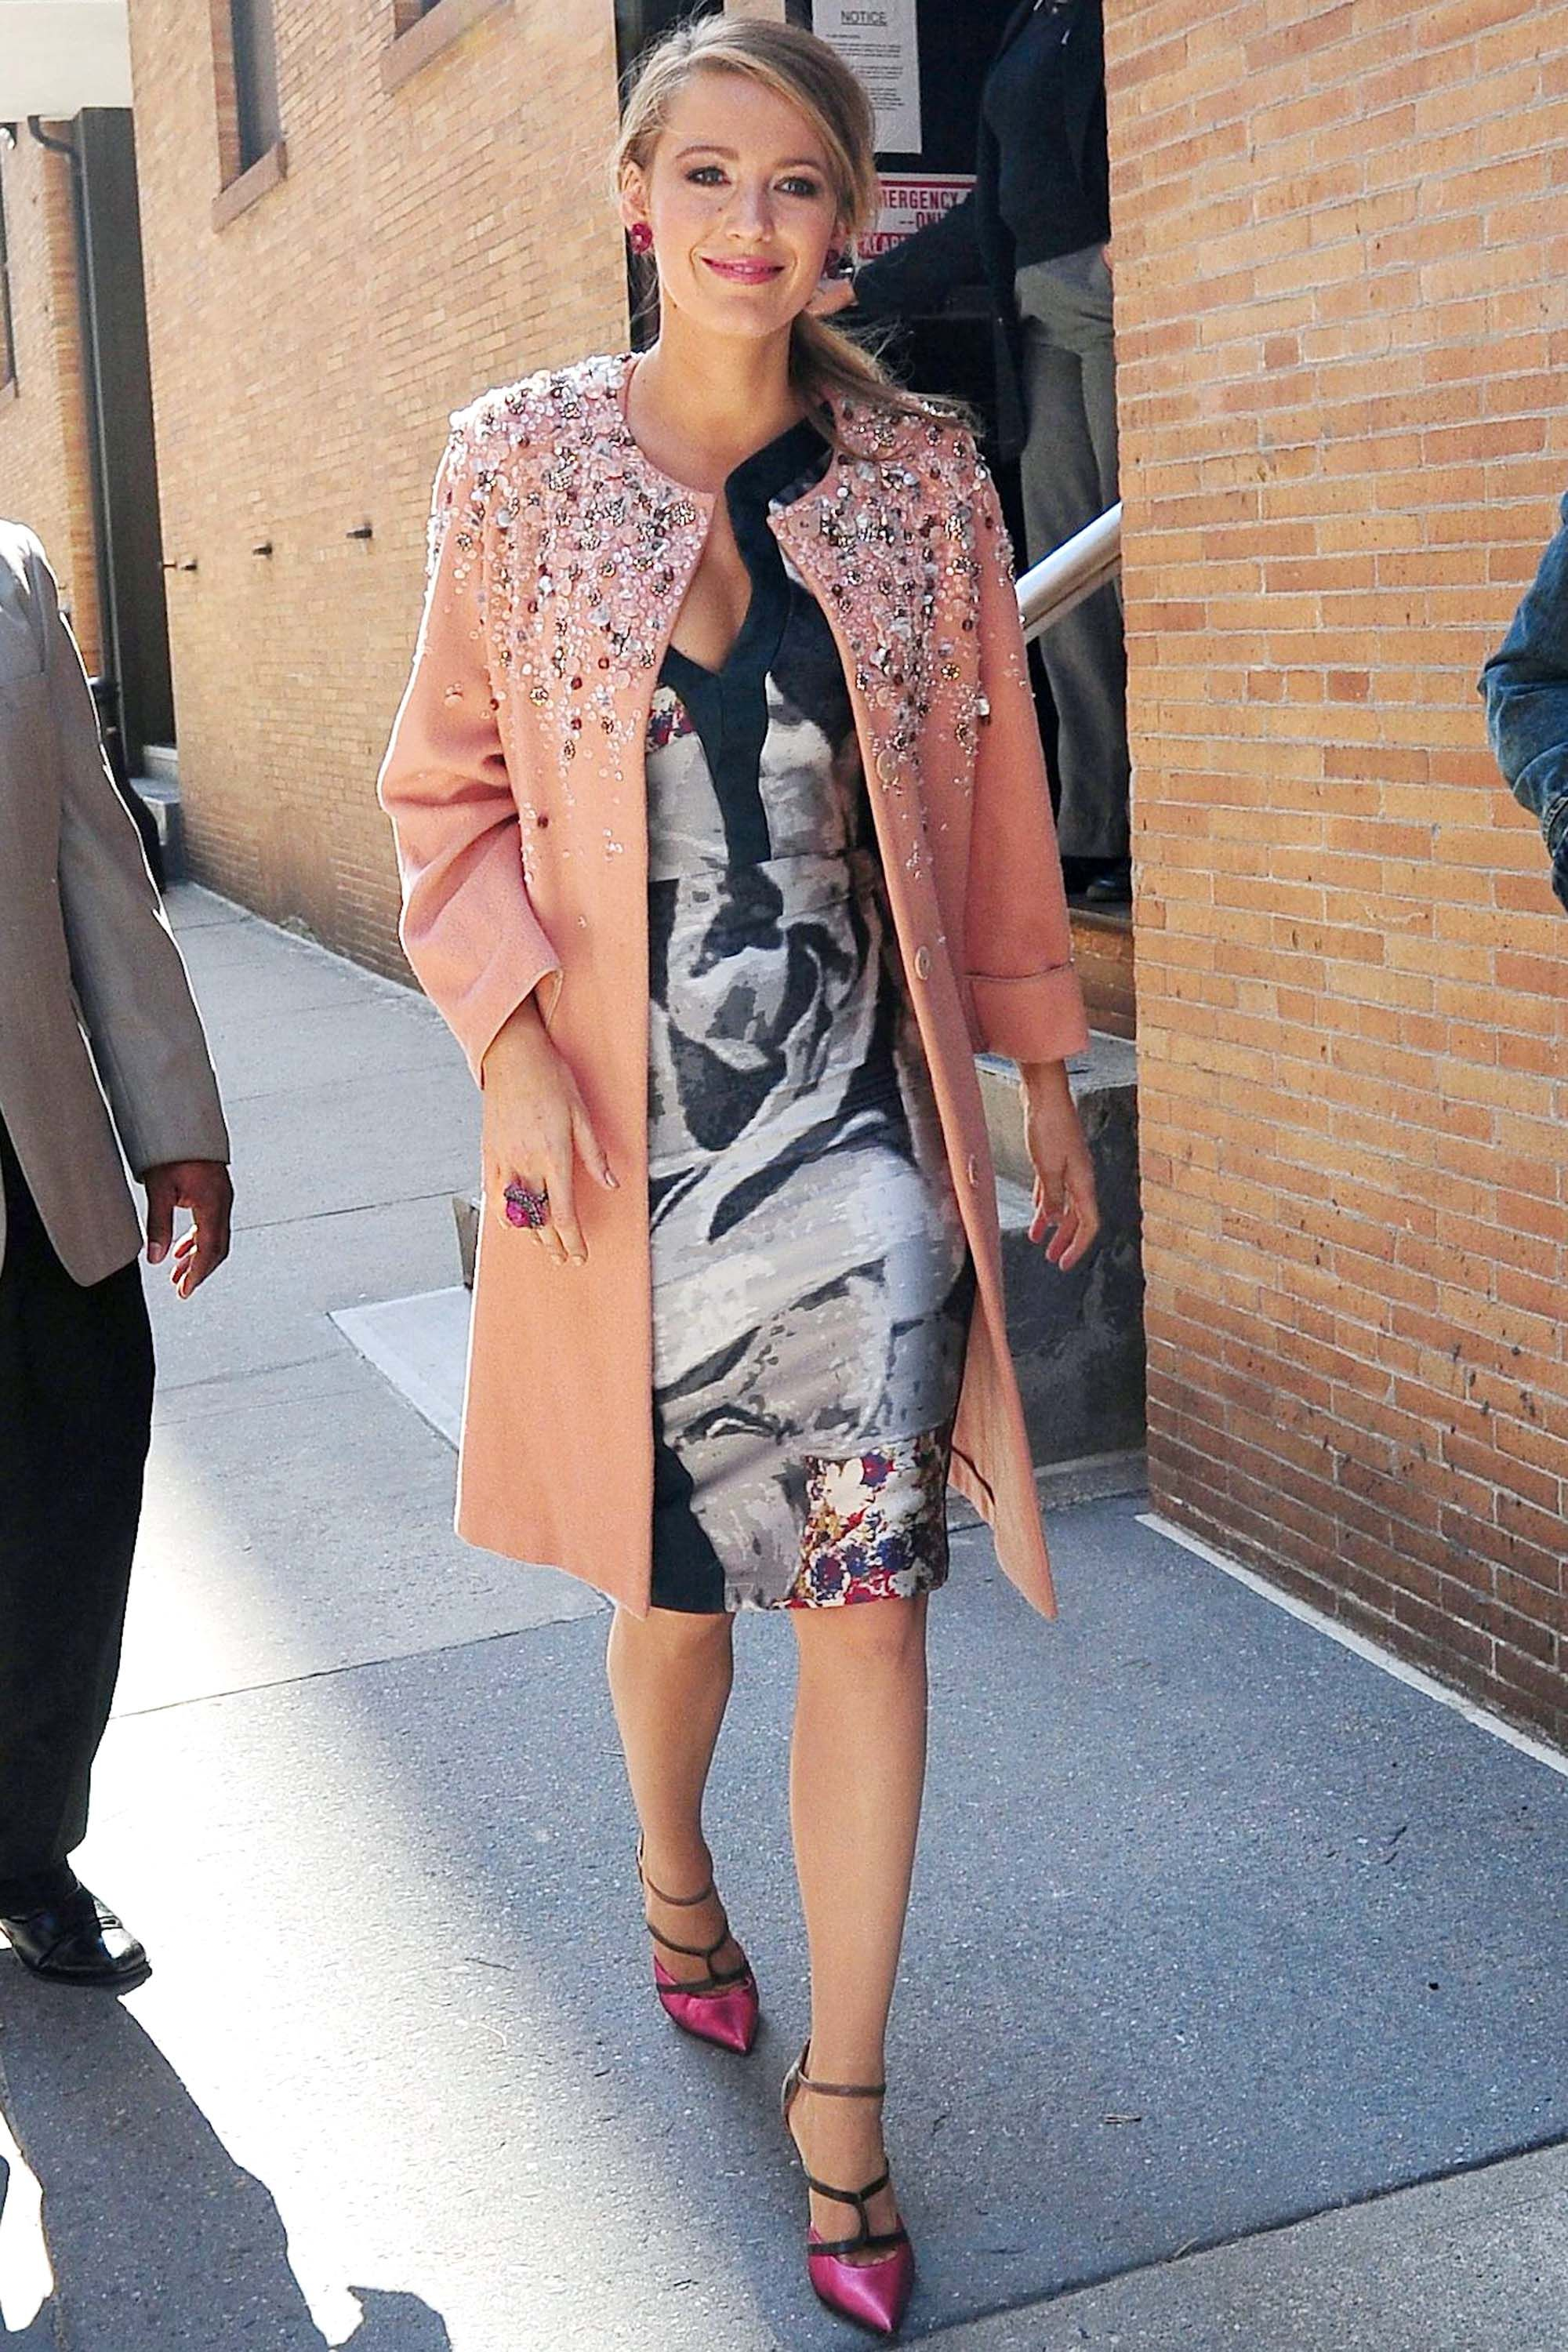 Mandatory Credit: Photo by REX Shutterstock (2696459m)Blake LivelyBlake Lively out and about, New York, America - Apr 2015